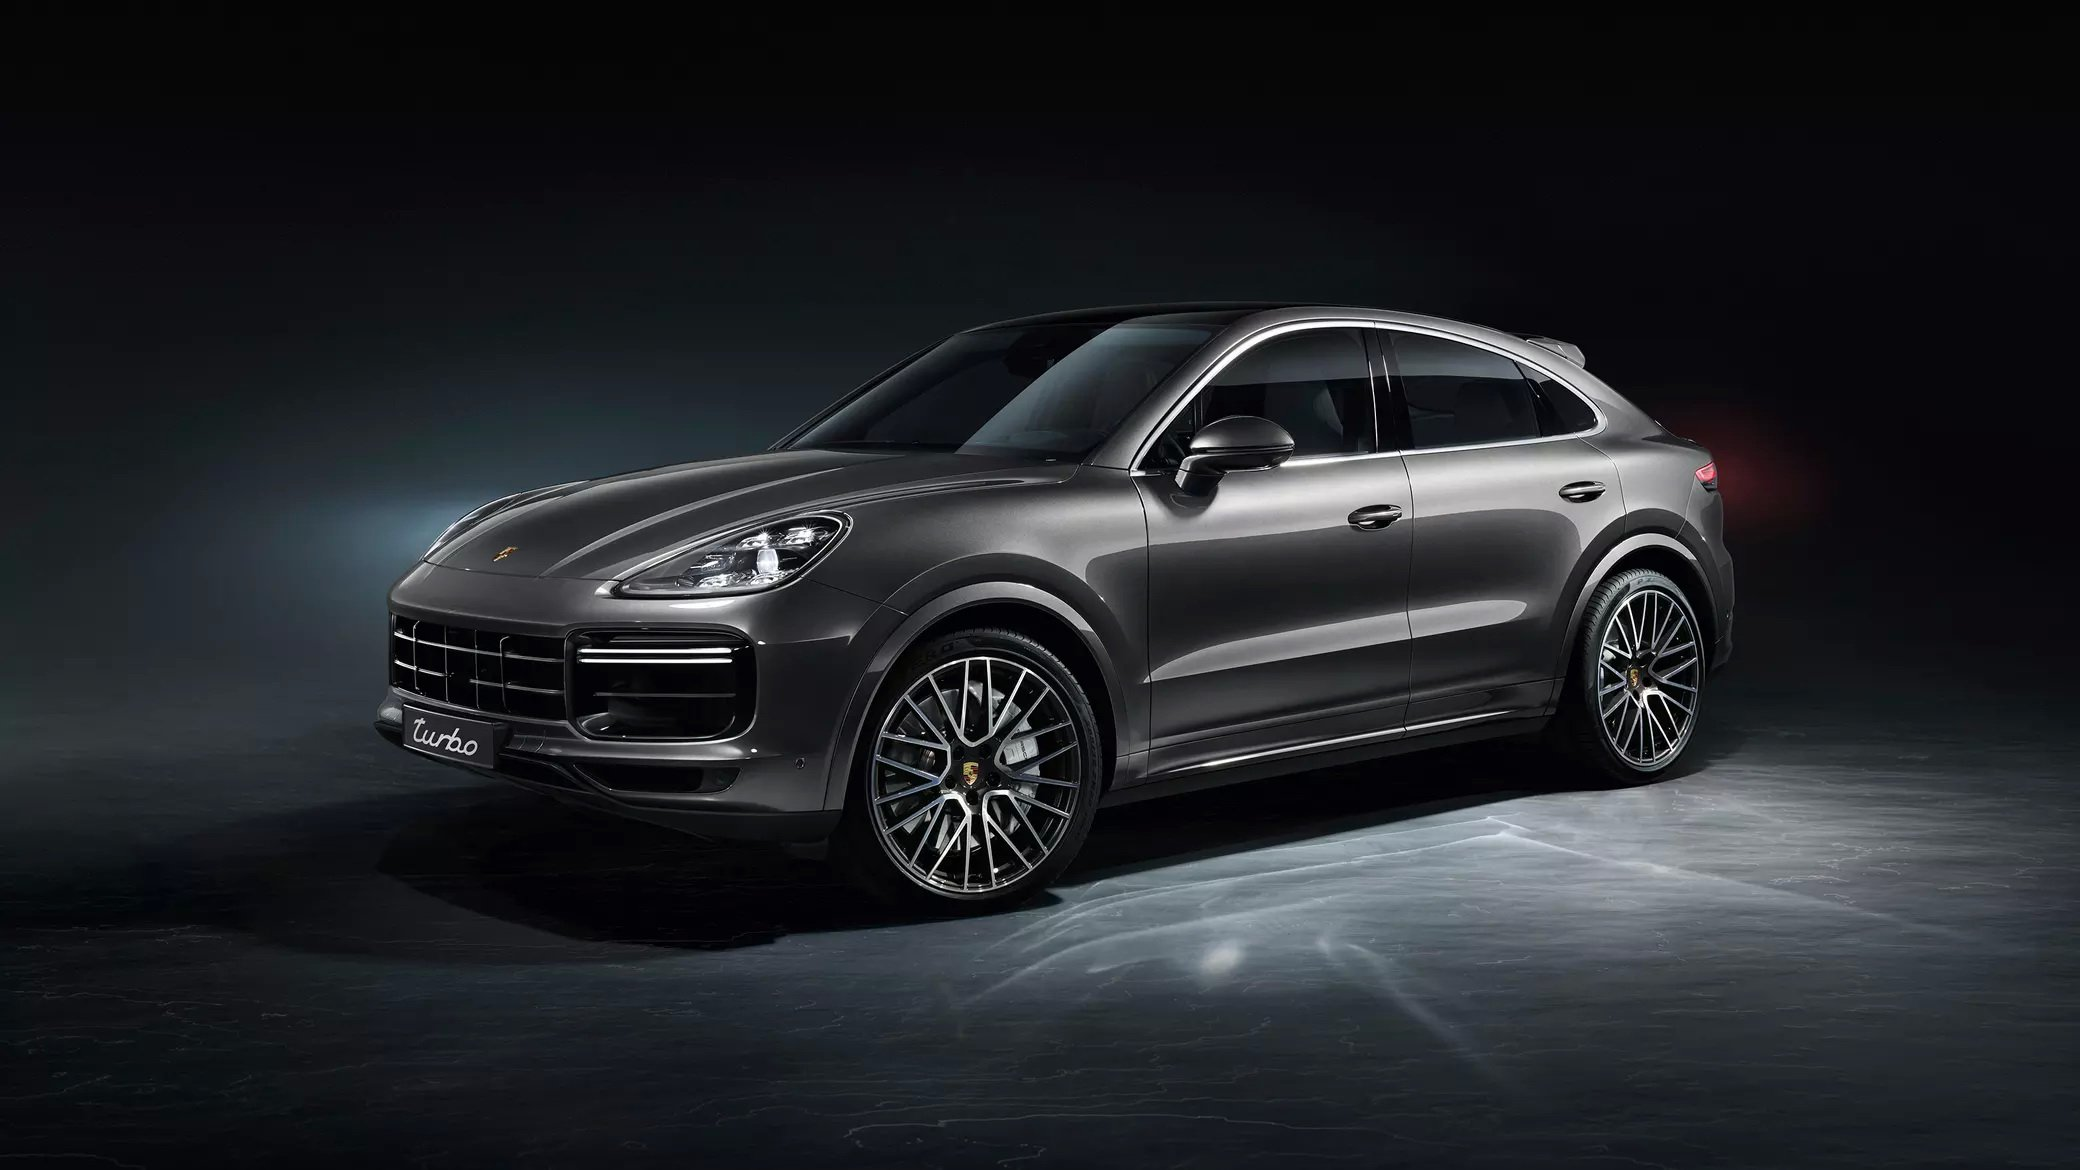 2020 Porsche Cayenne: Coupe Version, Design, Specs >> 2020 Porsche Cayenne Coupe Review Autoevolution